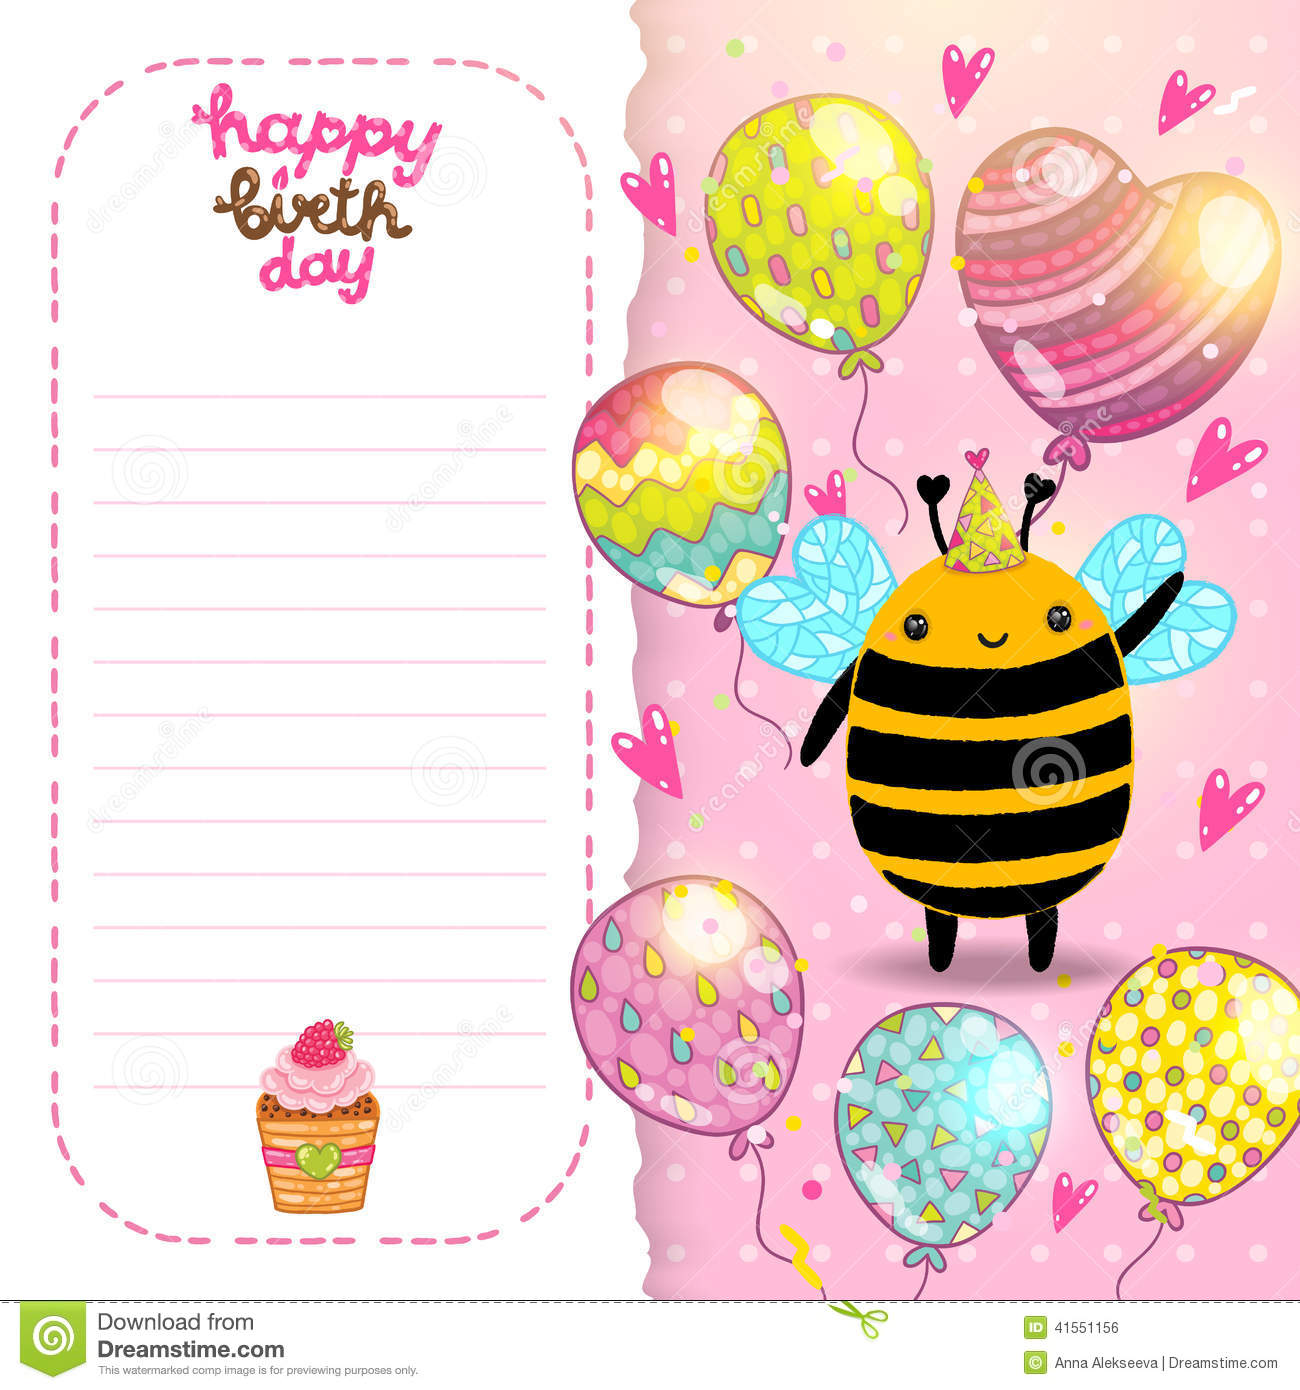 Happy Birthday Card Background With A Bee. Cutie, Insect.  Happy Birthday Cards Templates